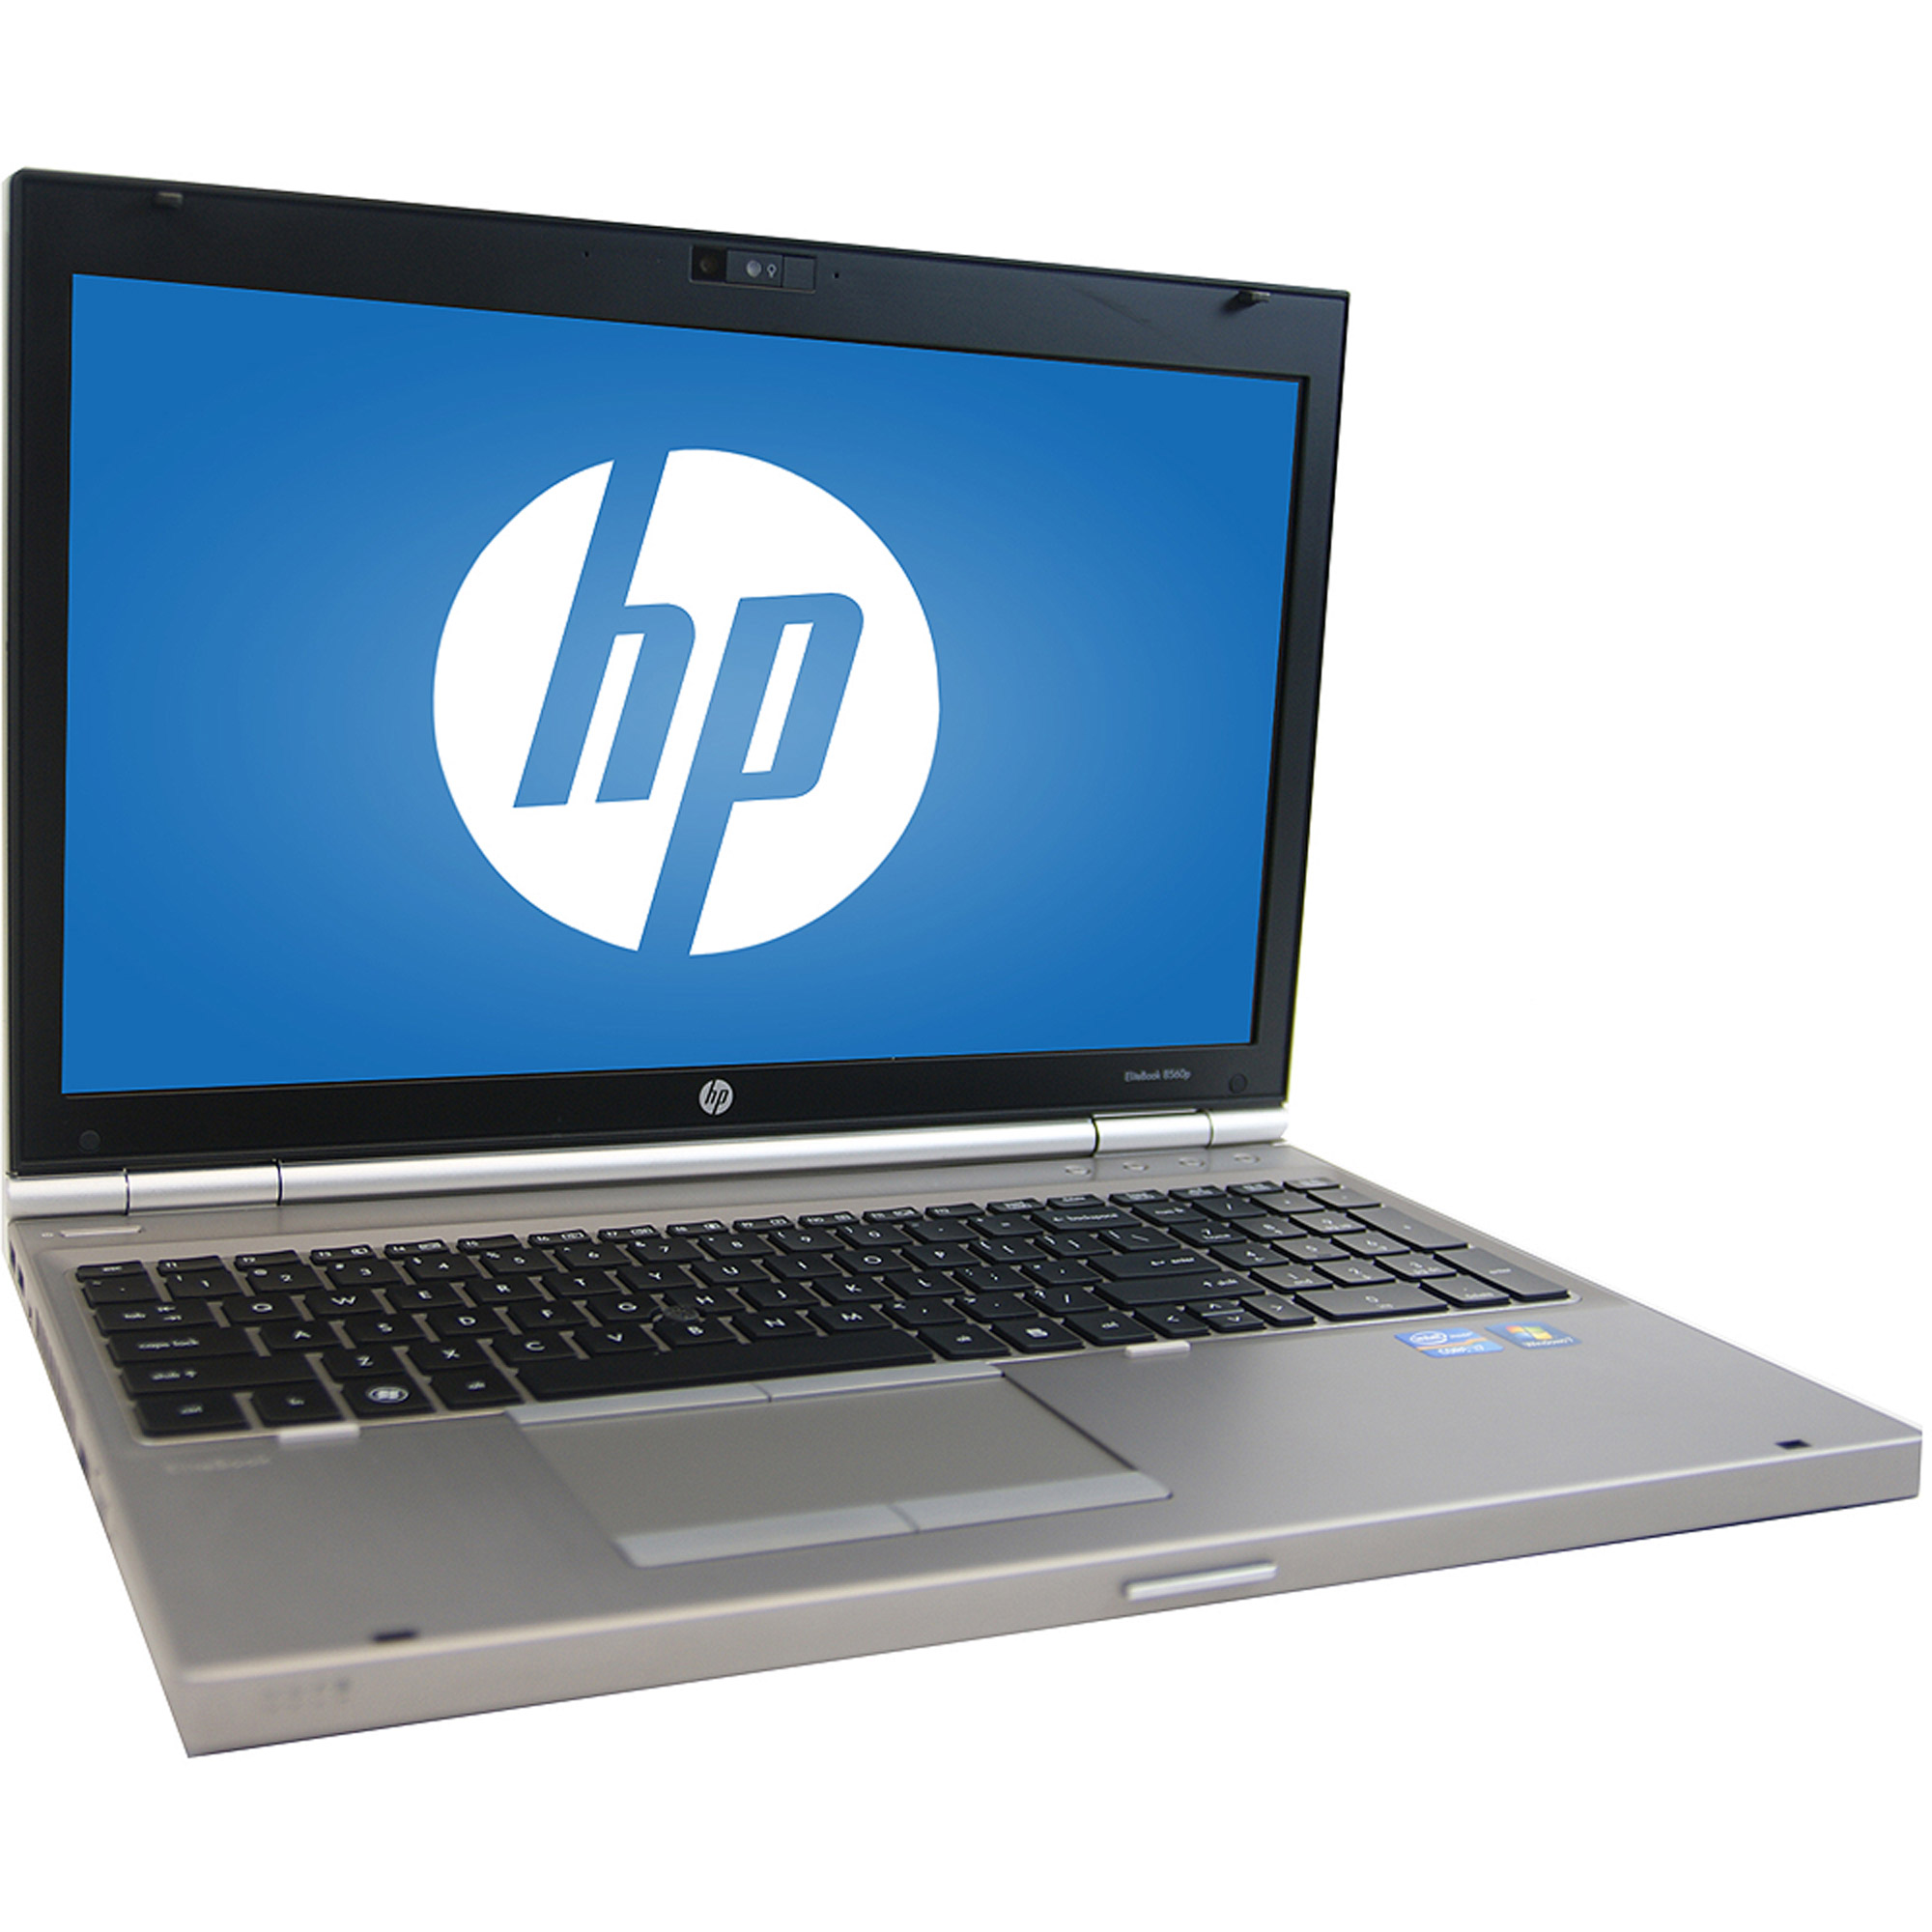 "Refurbished HP Silver 15.6"" 8560P Laptop PC with Intel Core i7 Quad-Core Processor, 4GB Memory, 128GB SSD and Windows 7 Professional"